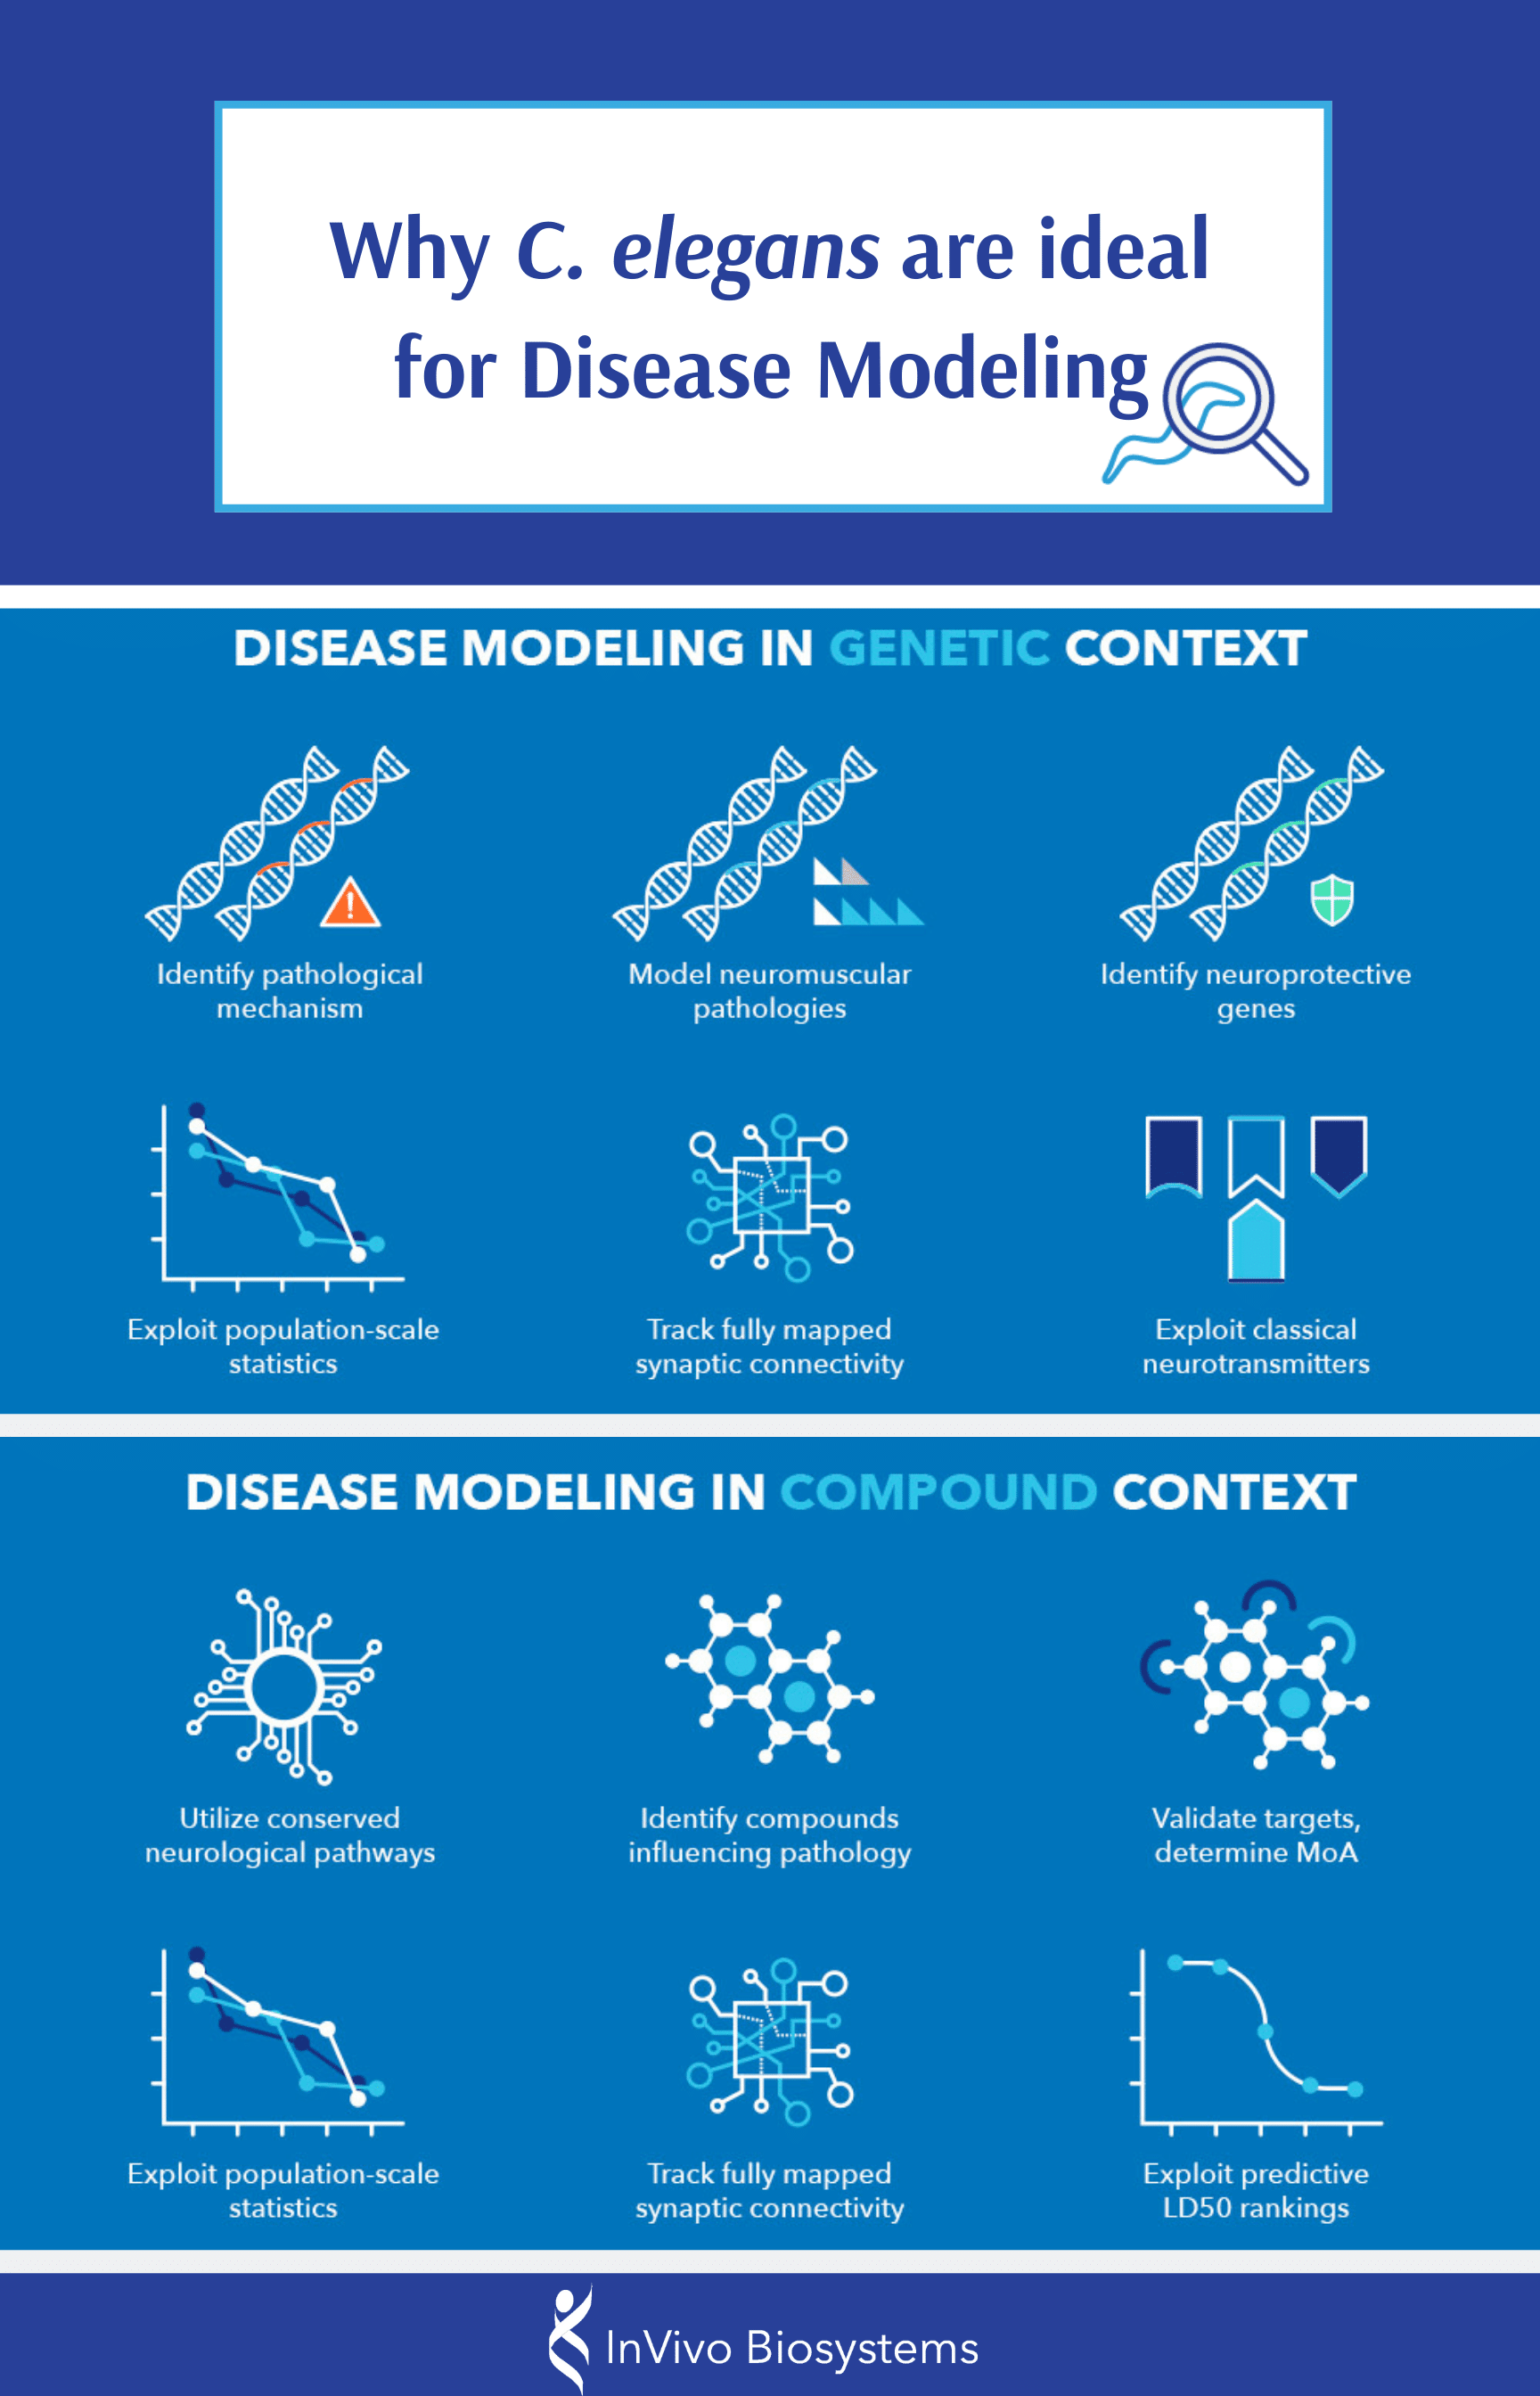 Why C. elegans are ideal for Disease Modeling